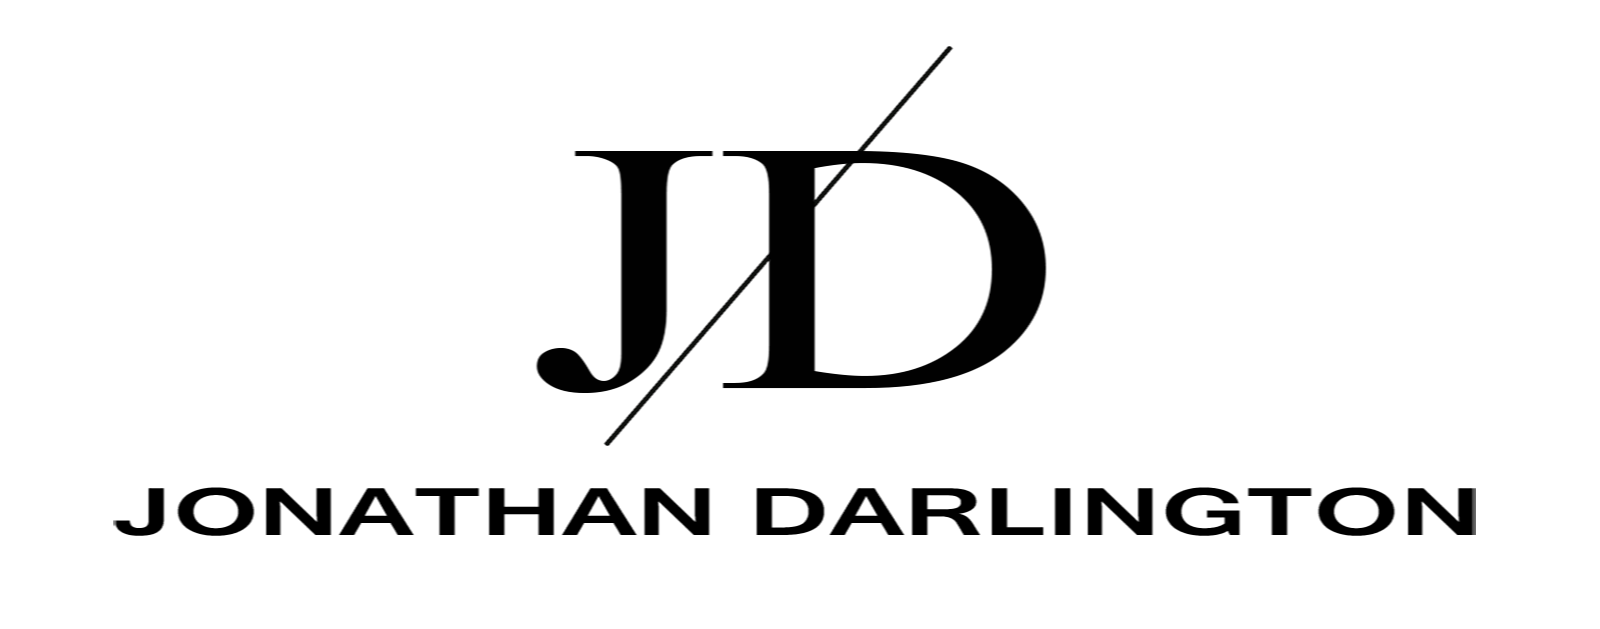 Jonathan Darlington